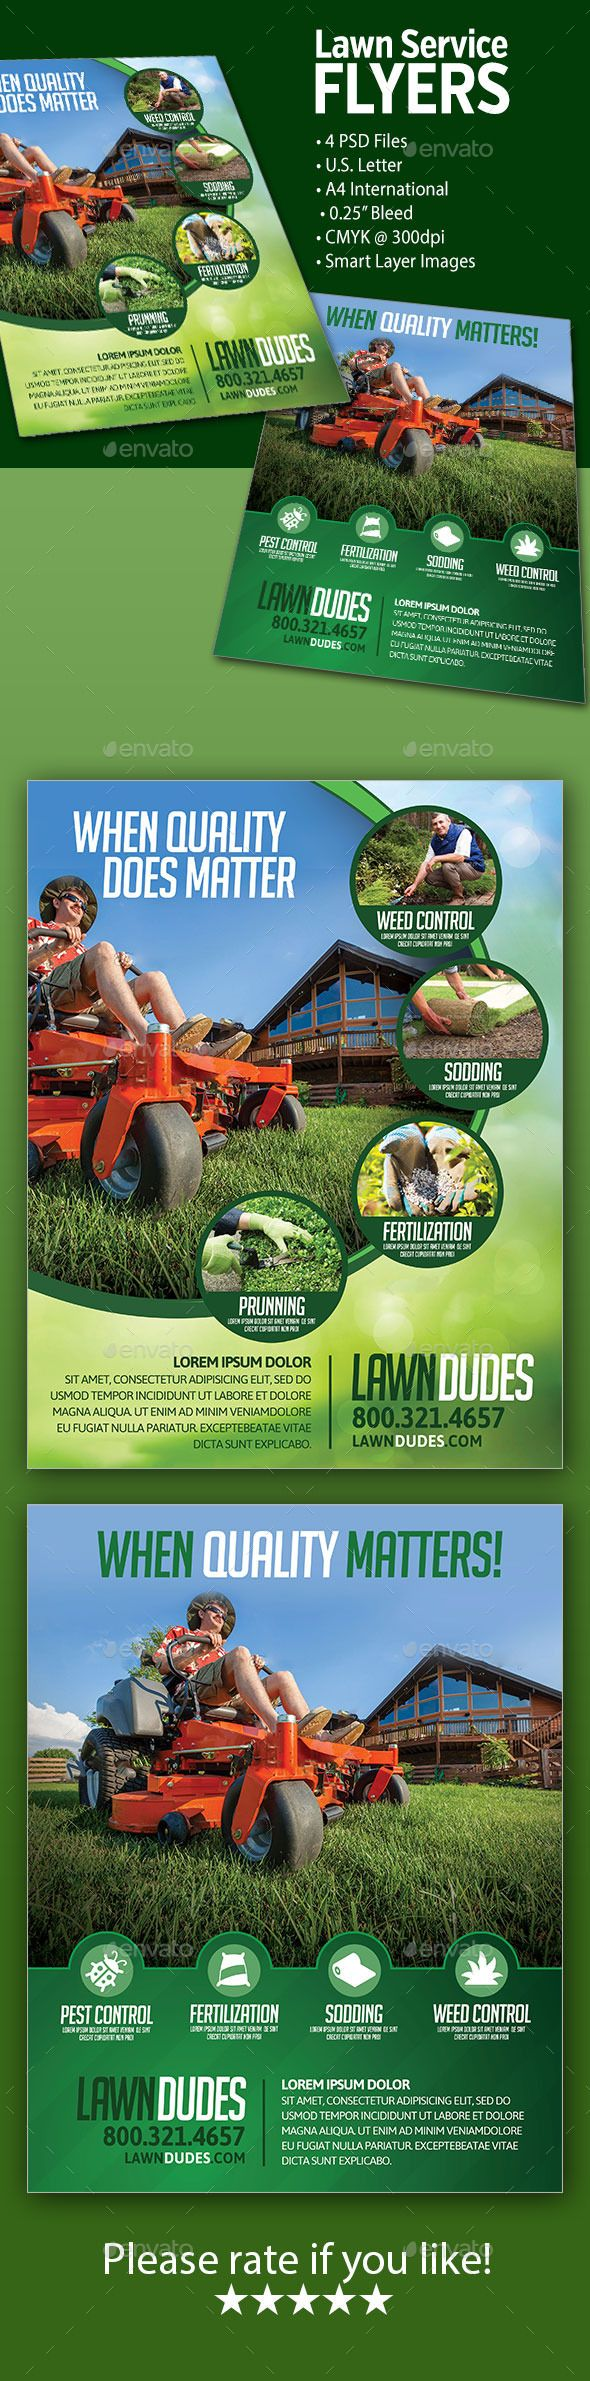 Lawn Service Flyers Template Download: http://graphicriver.net/item/lawn-service-flyers/9702509?ref=ksioks